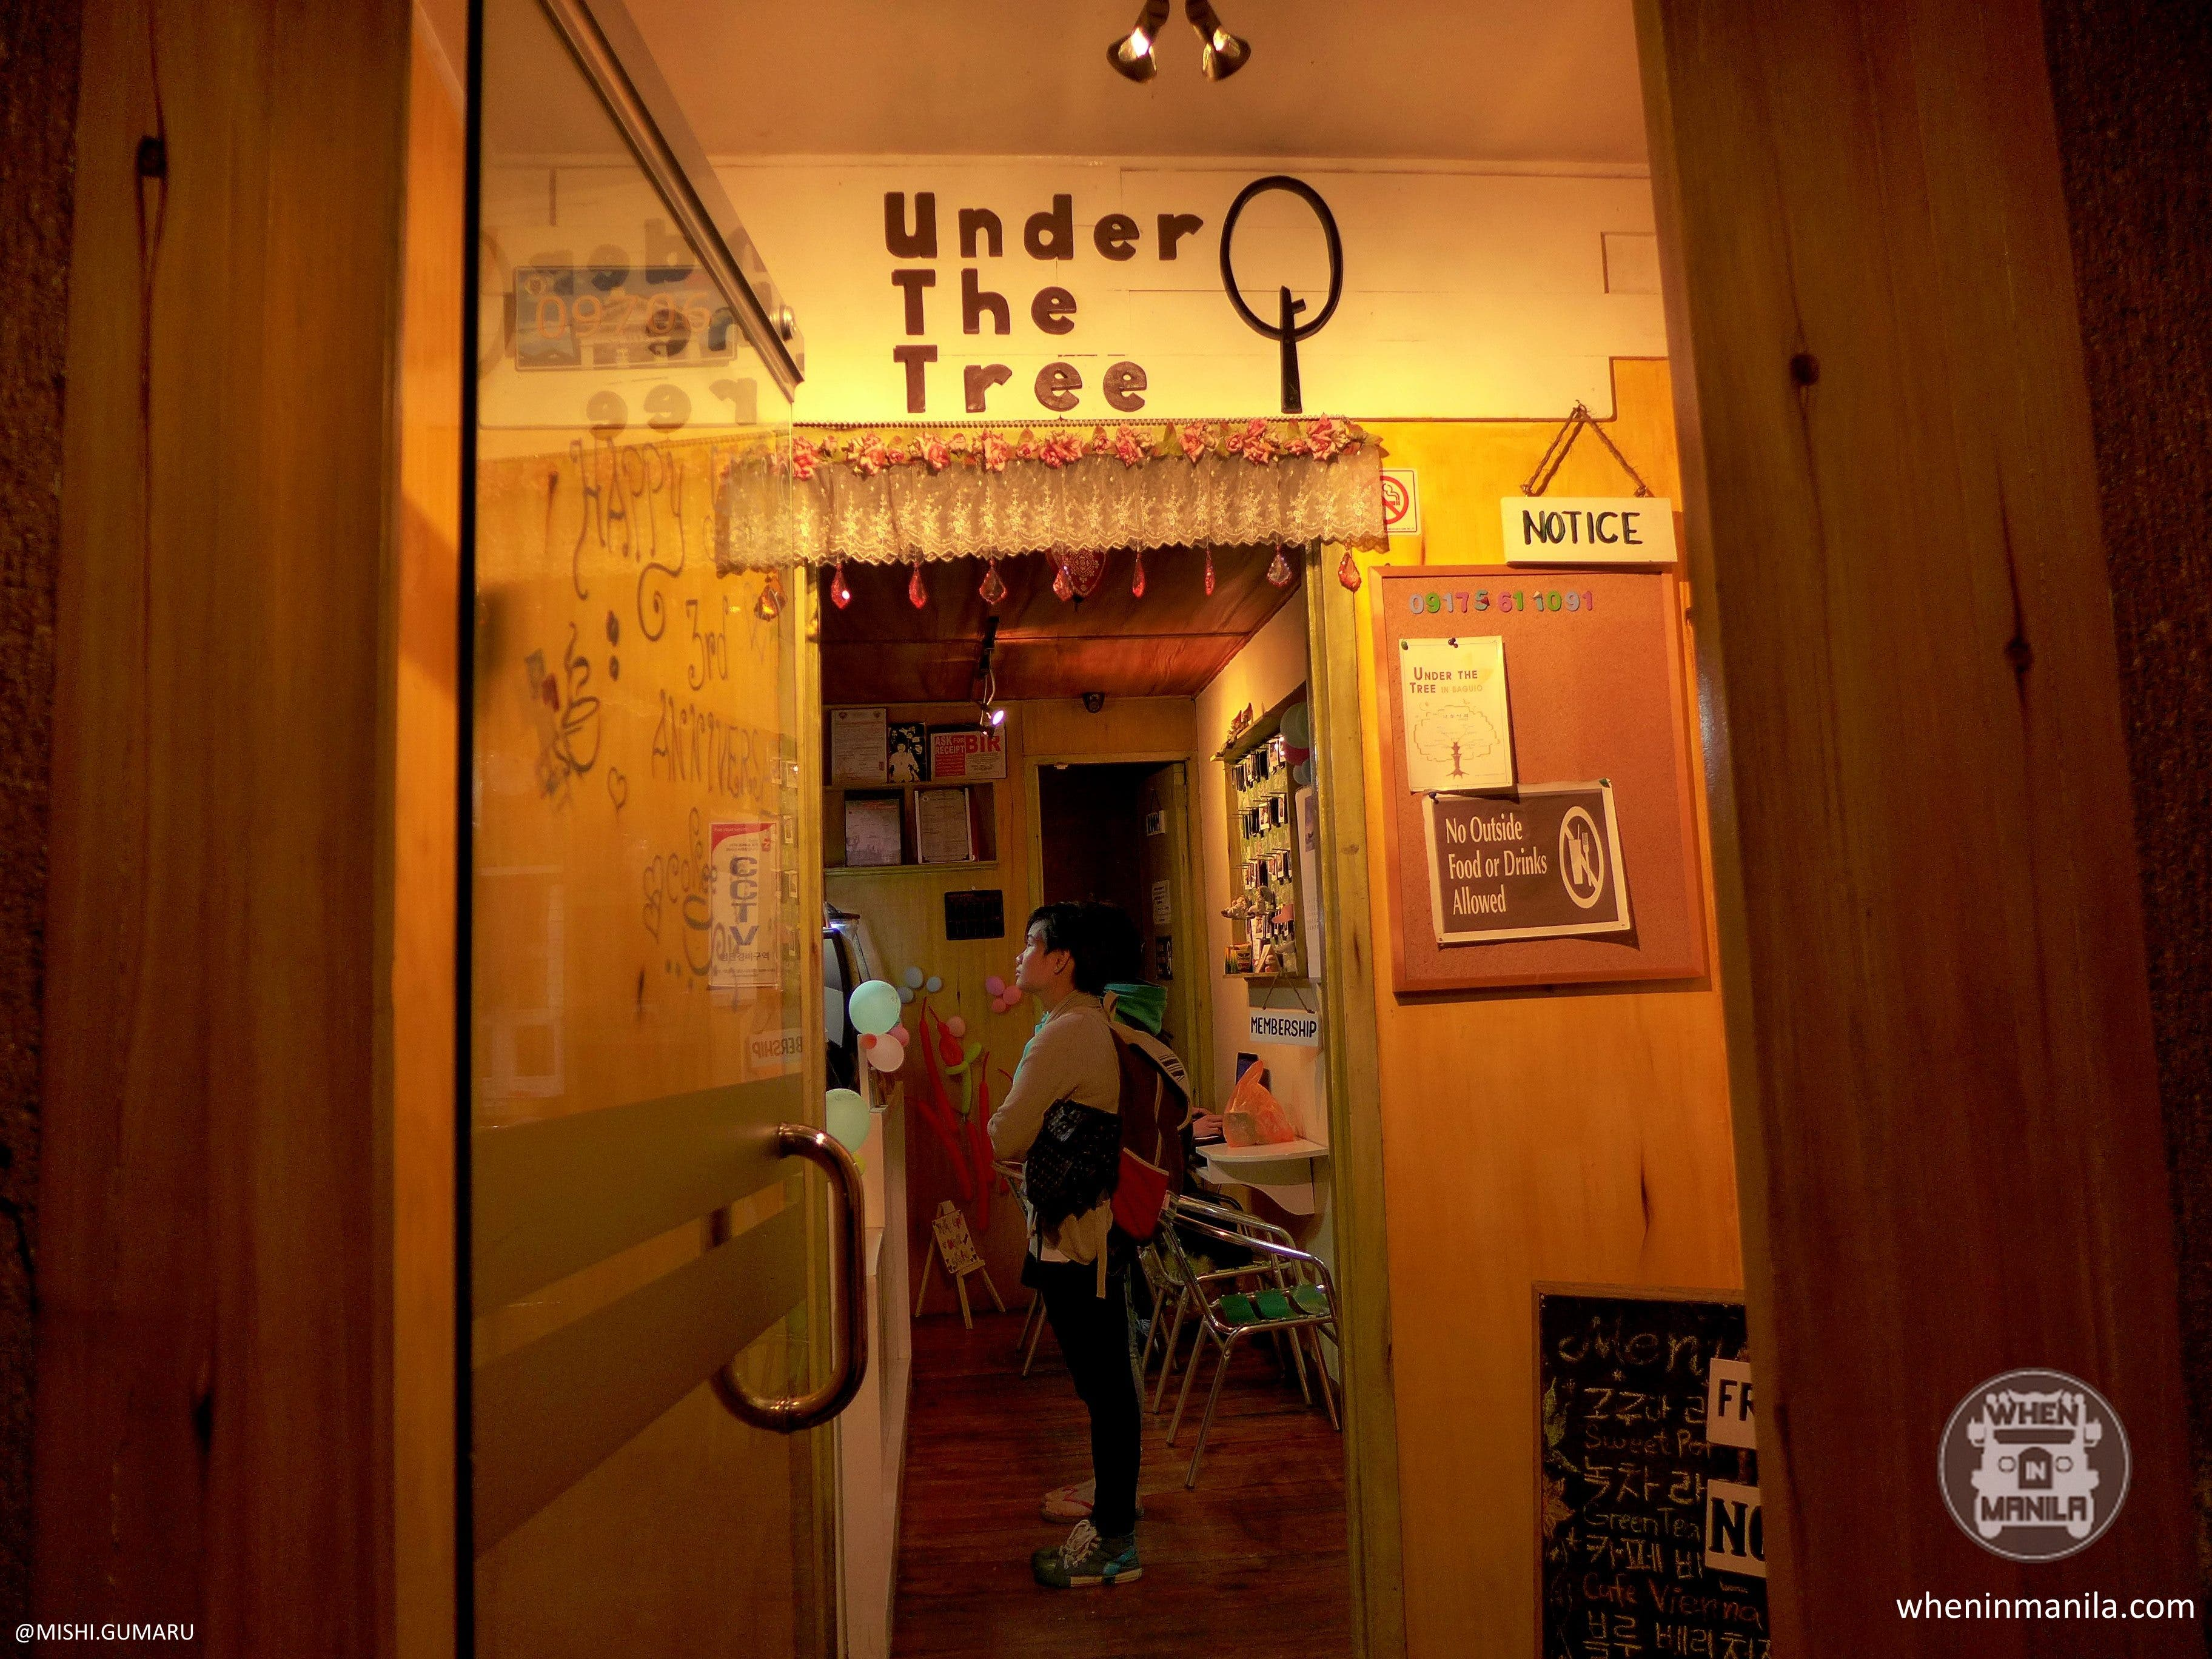 5-Cool-And-Quirky-Cafes-You-Must-Check-Out-When-In-Baguio2